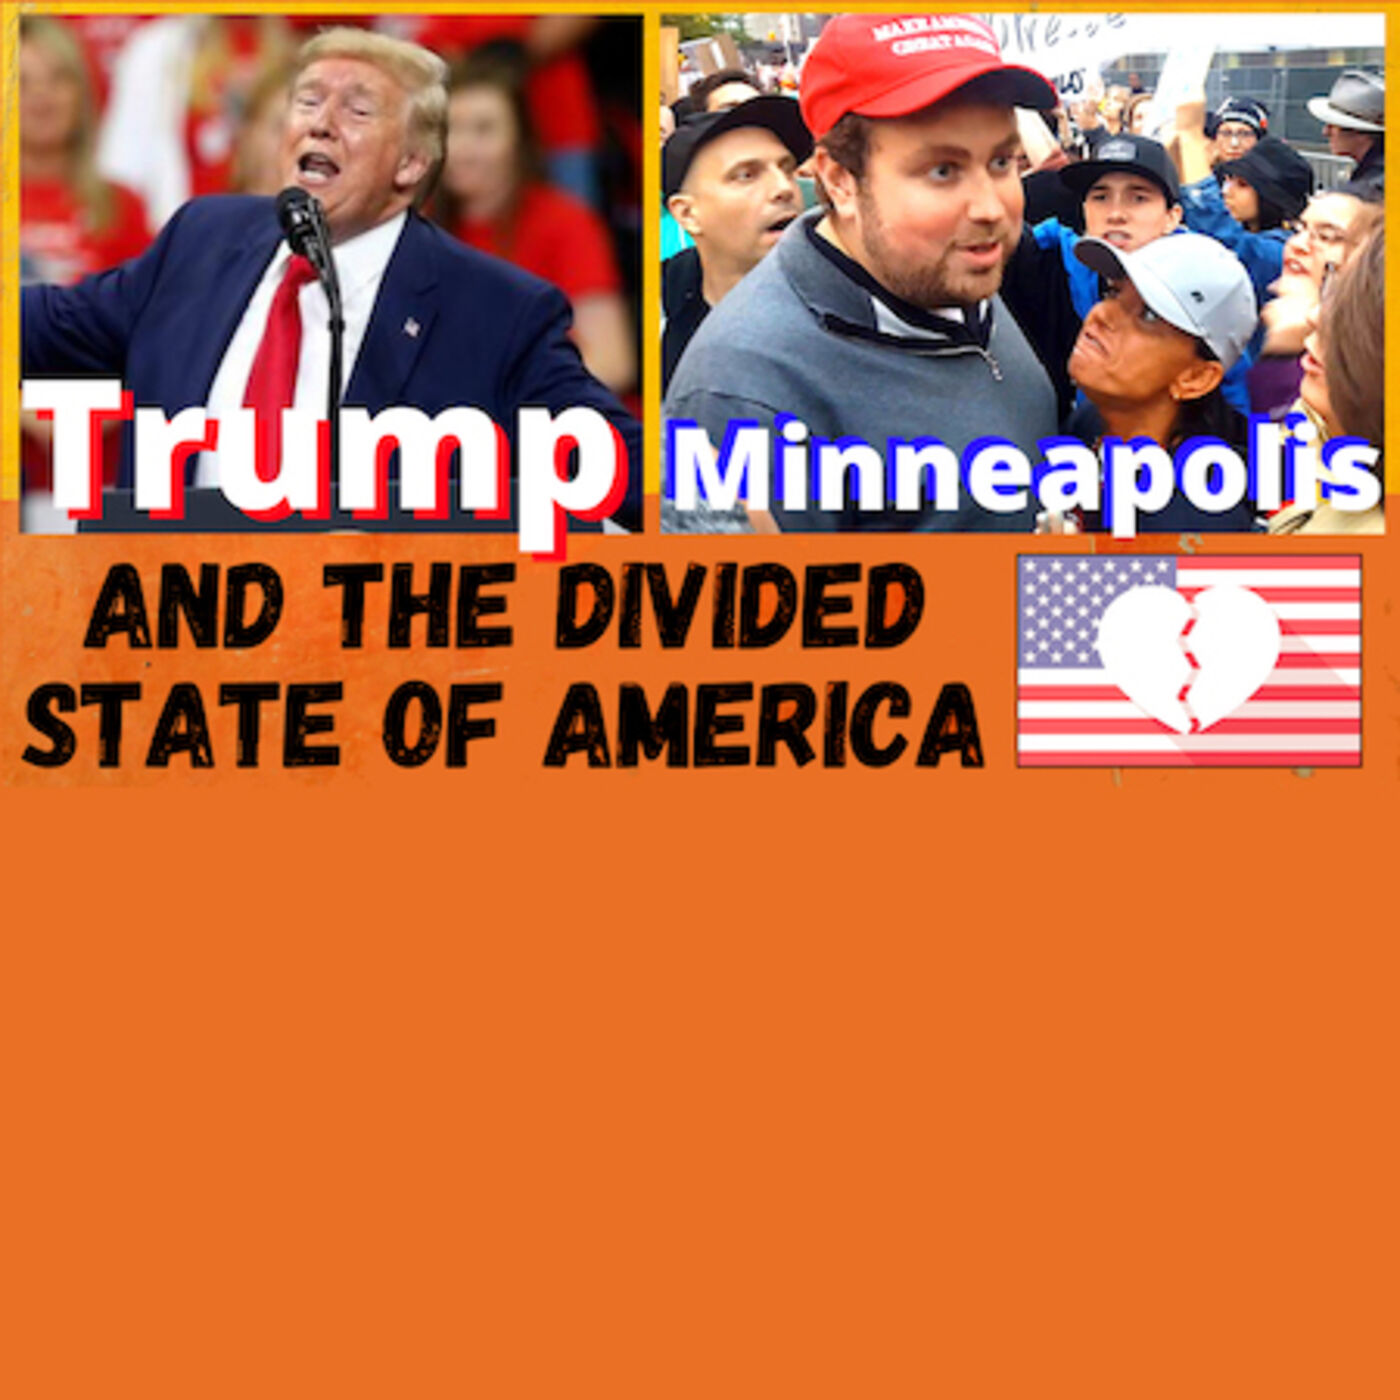 """""""Trump, Minneapolis, and the Divided State of America"""" - Independent journalist & filmmaker Brandon Ferdig talks about his latest documentary"""